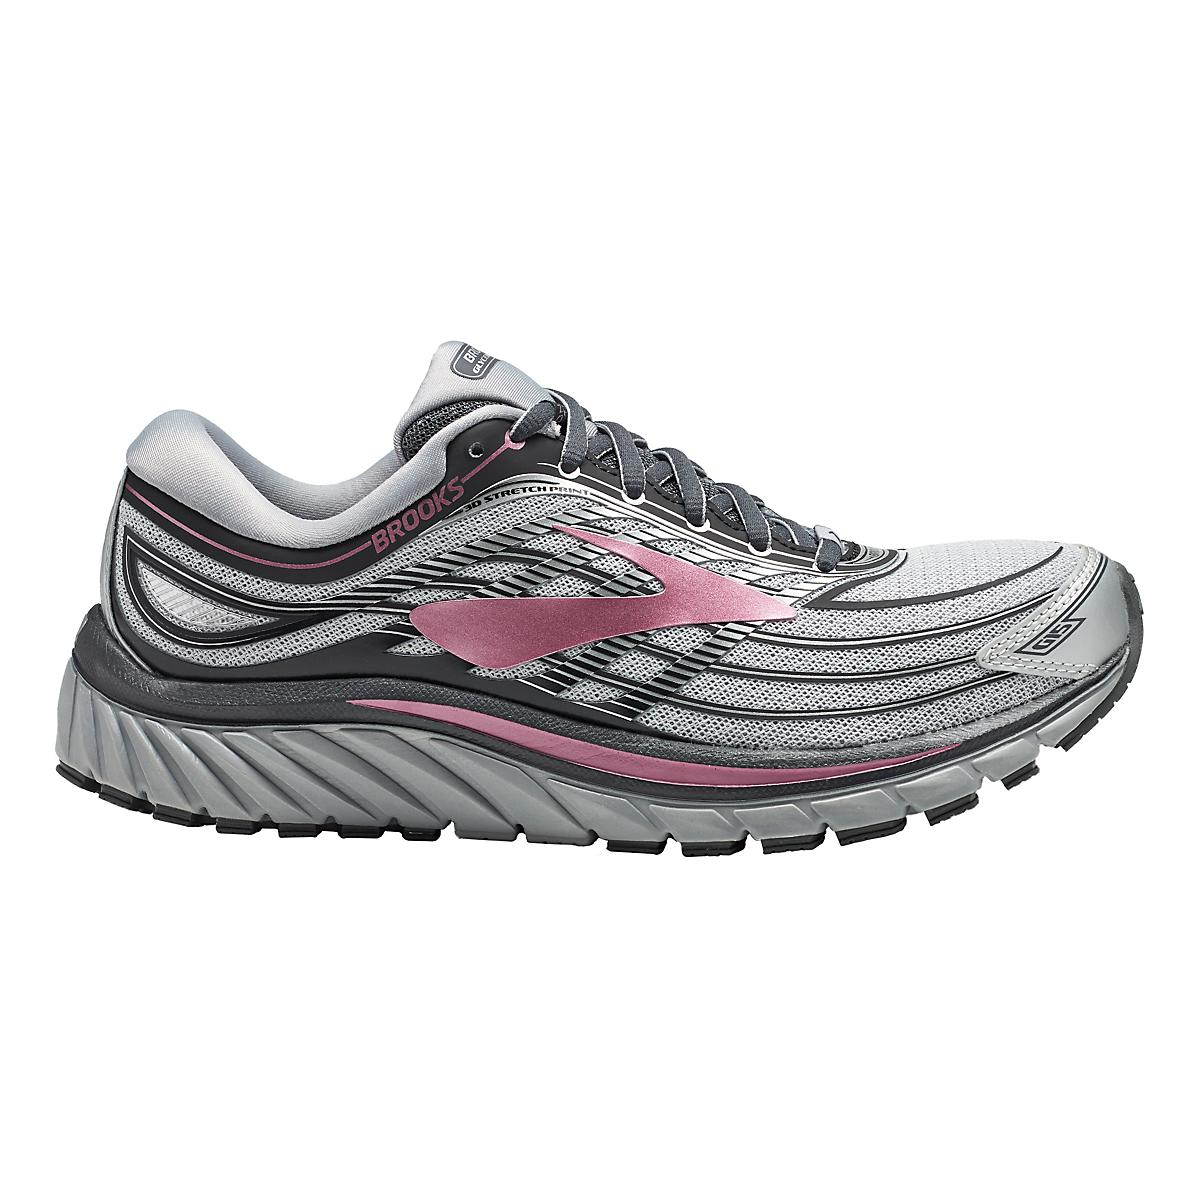 7e592a47b8c Brooks Glycerin 15 Women s Running Shoes for Sale